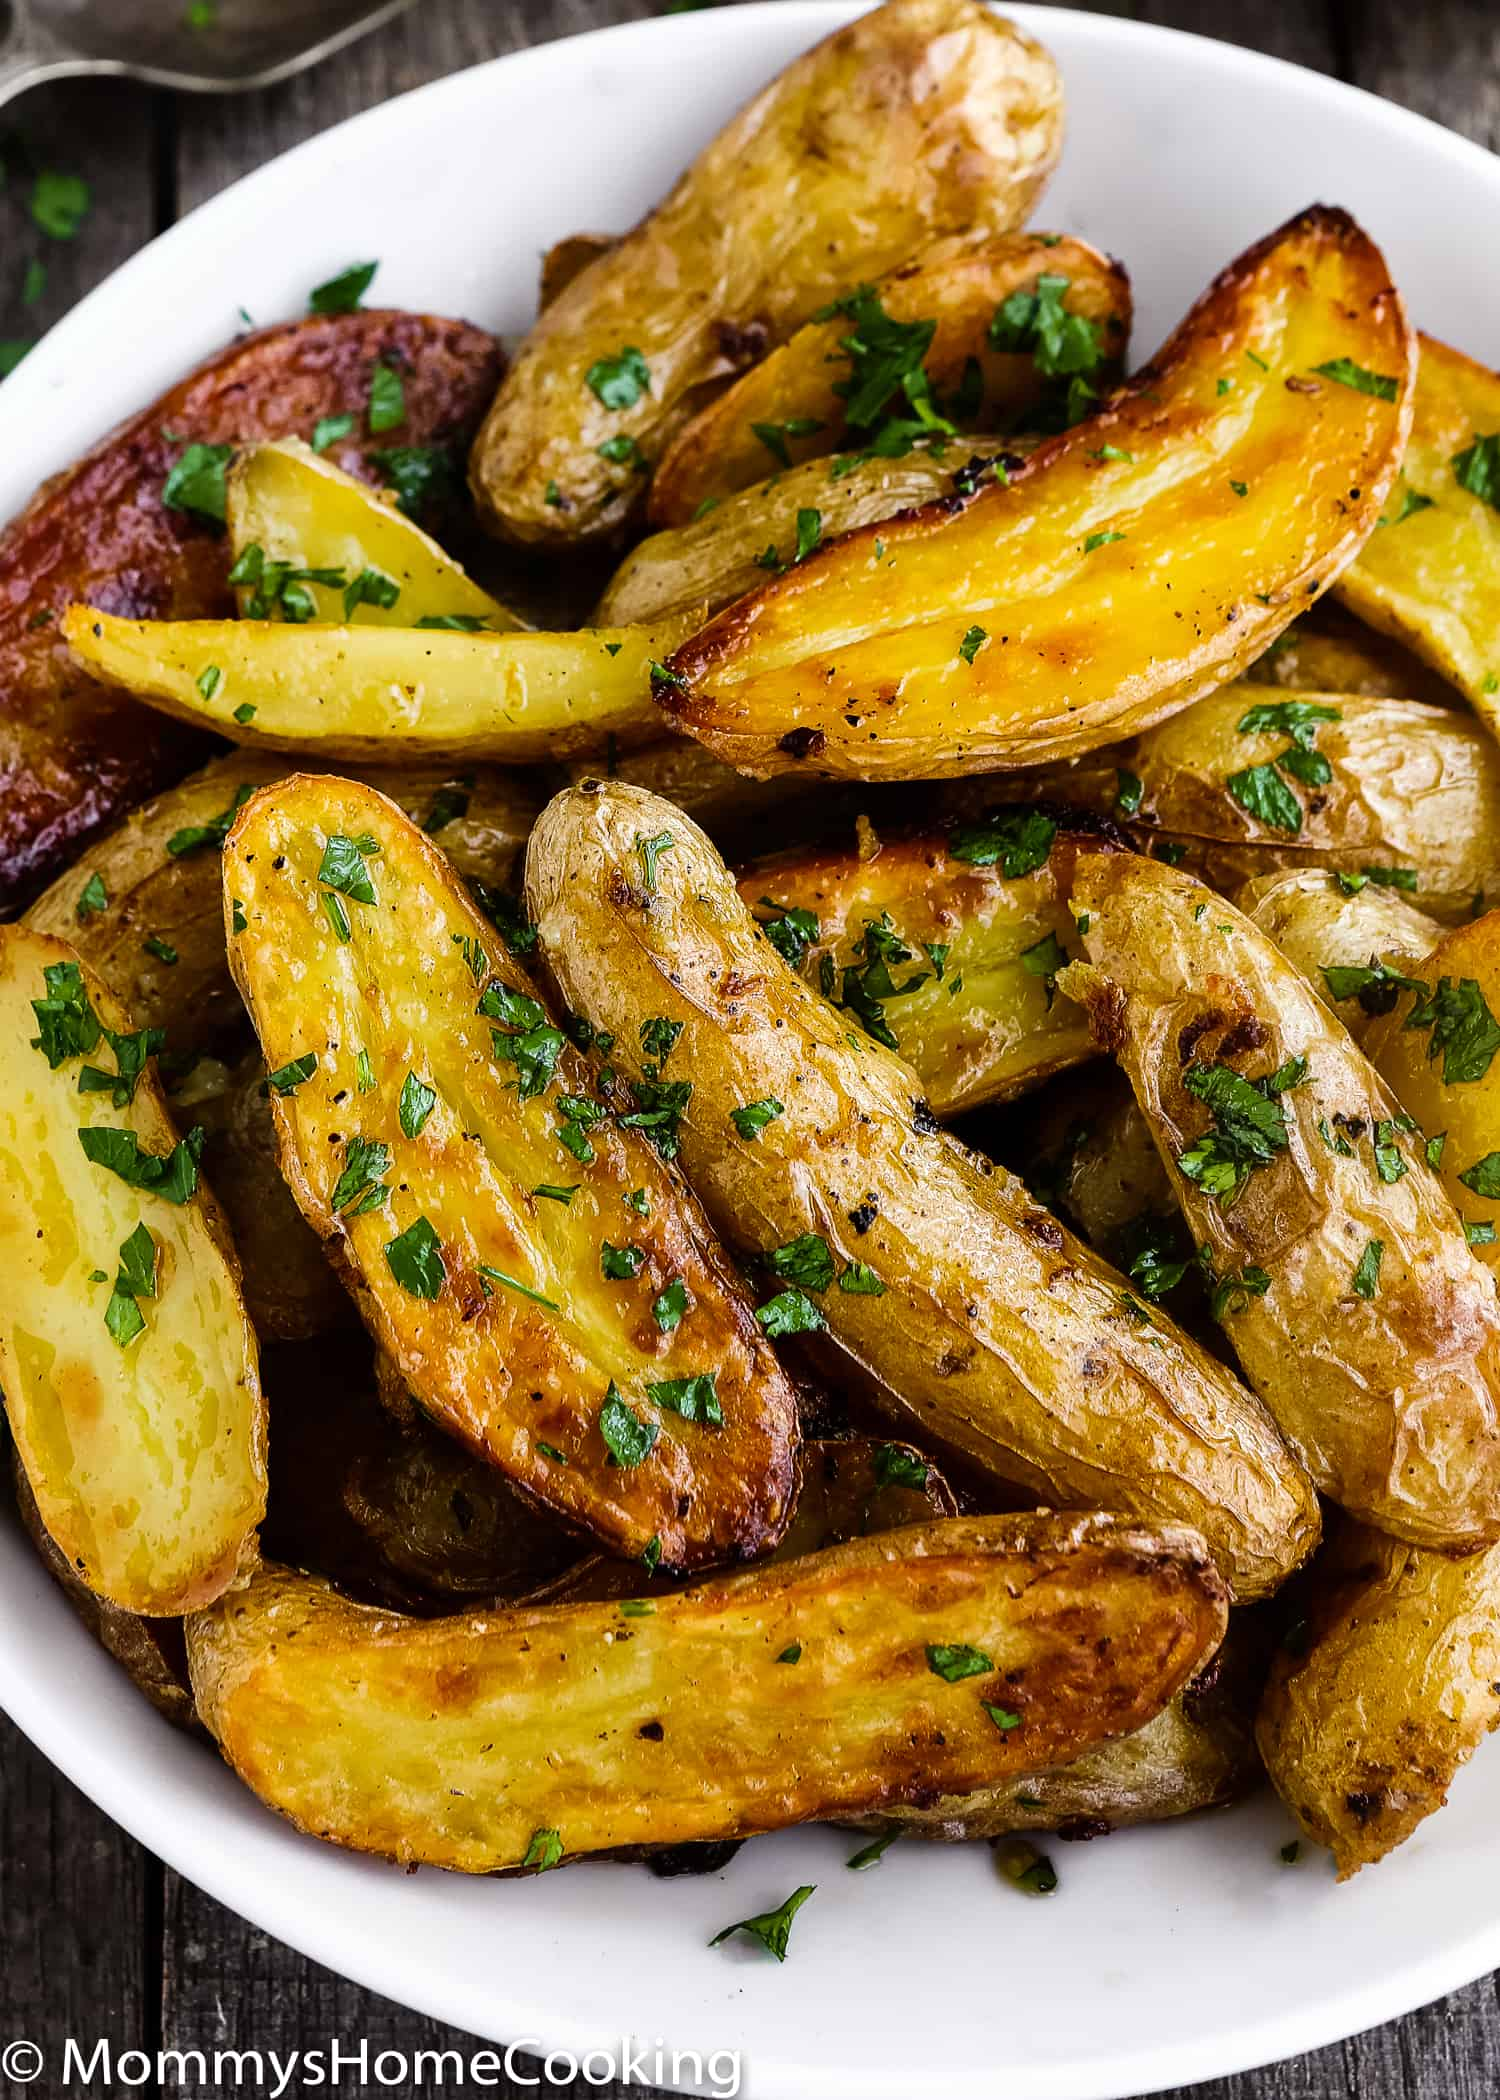 These Easy Garlic Lemon Roasted Potatoes are crispy outside, soft inside, a little salty and lemony. Perfect side dish for just about any entree. http://mommyshomecooking.com